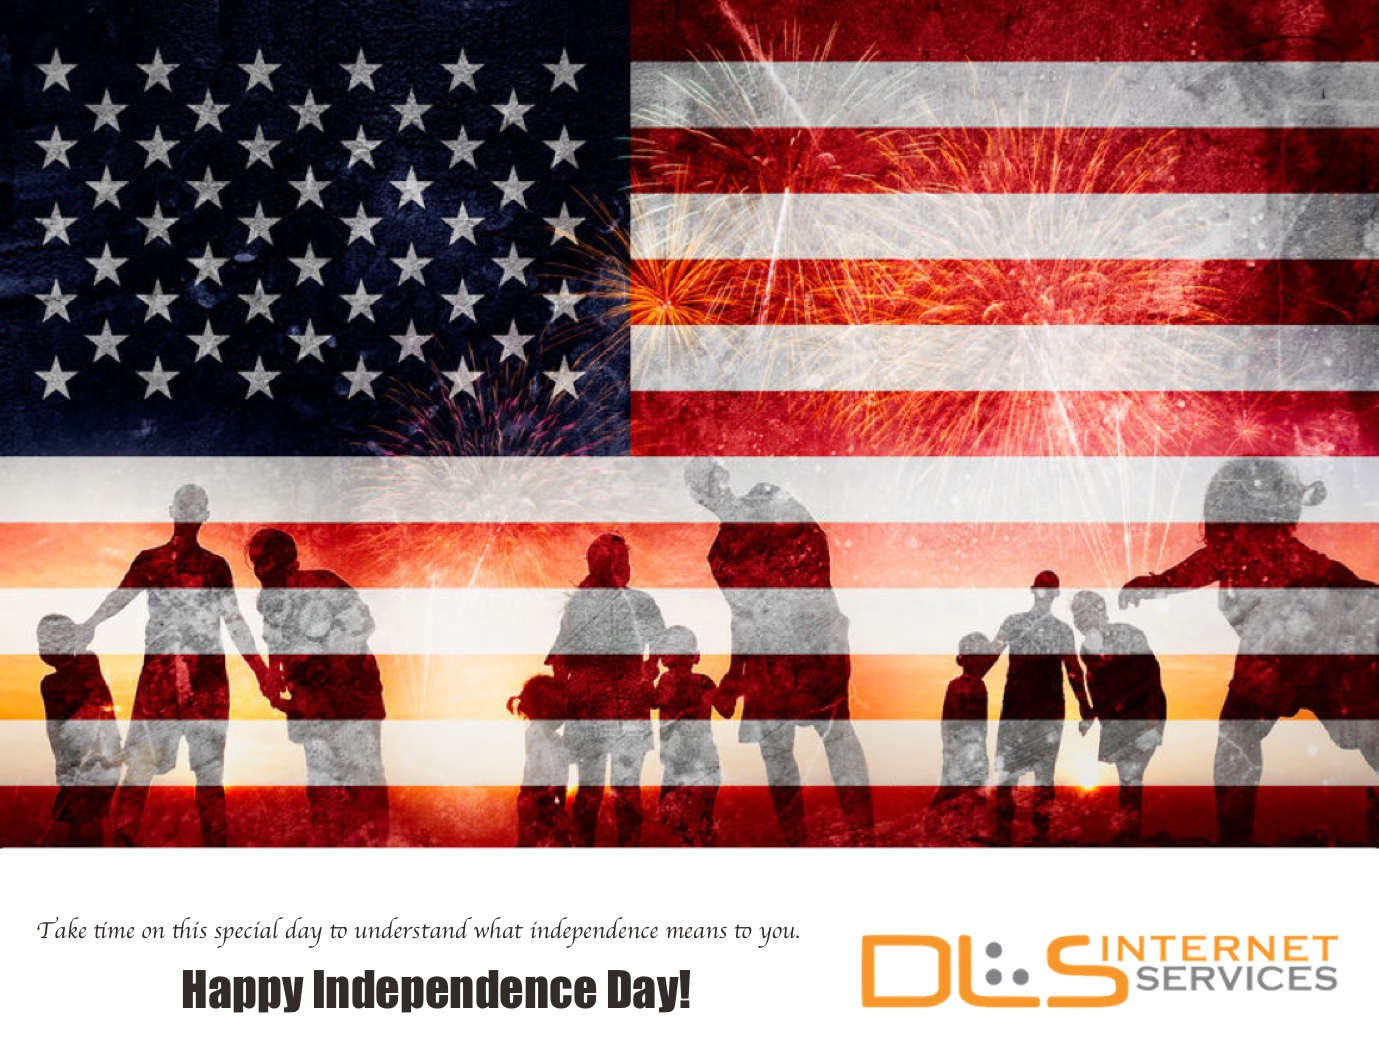 Take time on this special day to understand what independence means to you.